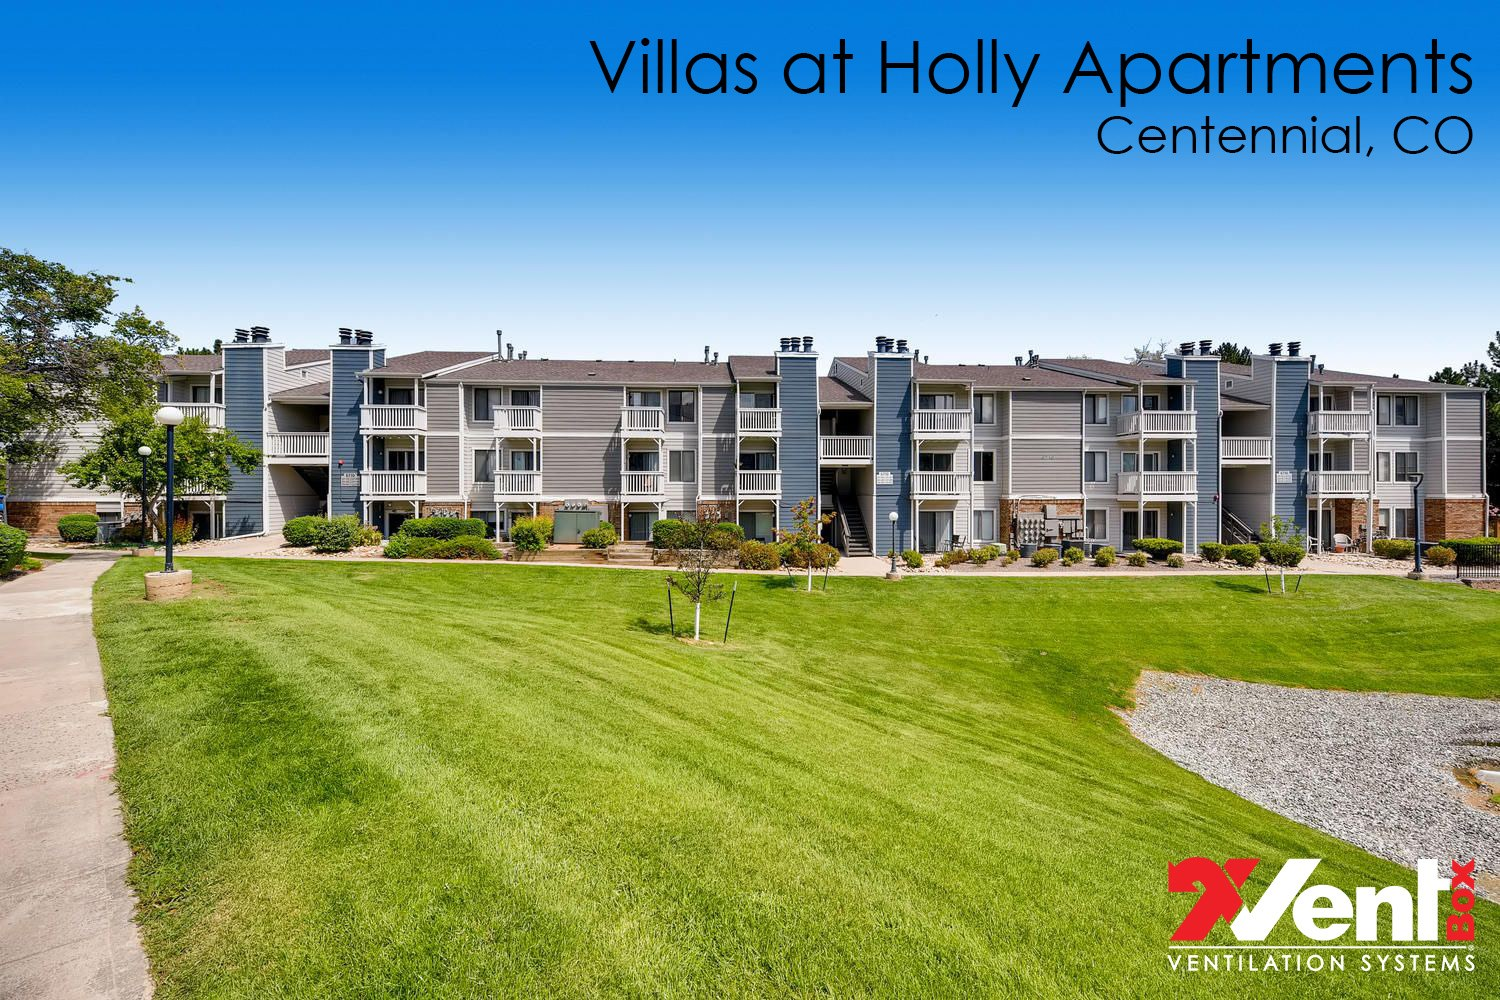 Villas at Holly Apartments